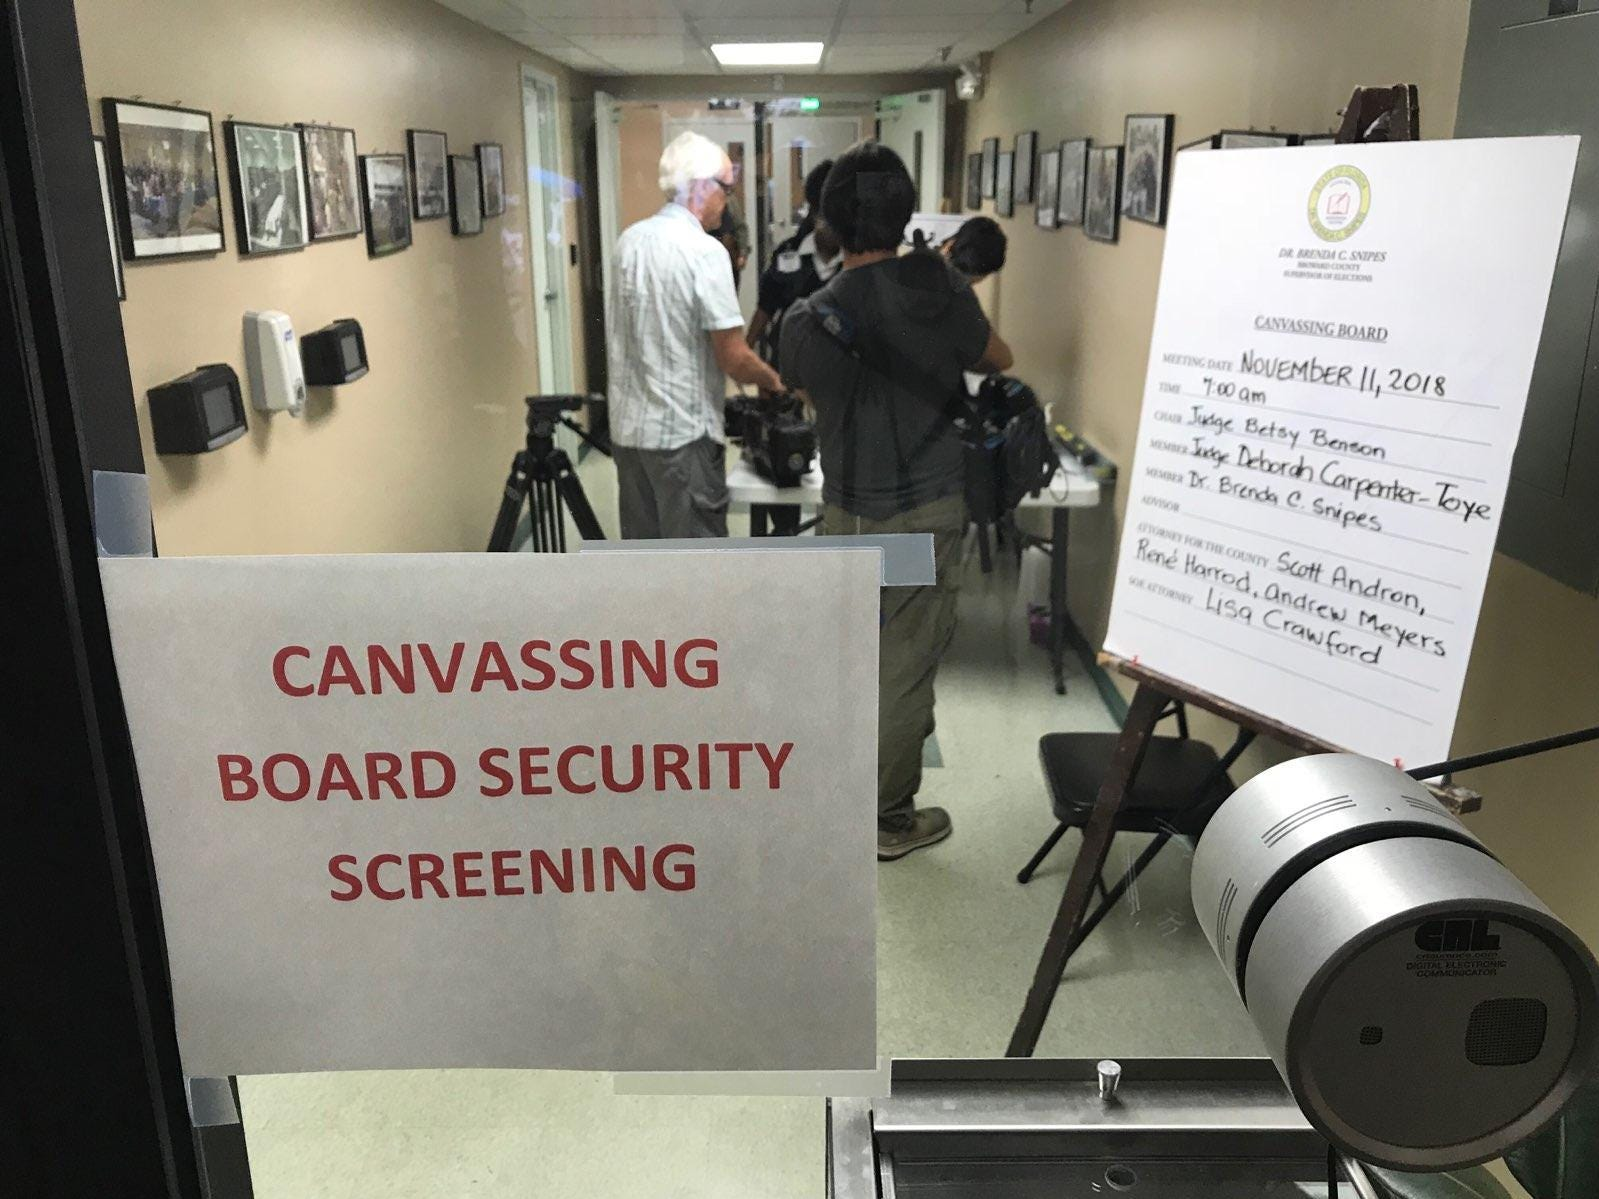 The recount was underway Sunday at the Supervisor of Elections office at Lauderhill Mall in Broward County.